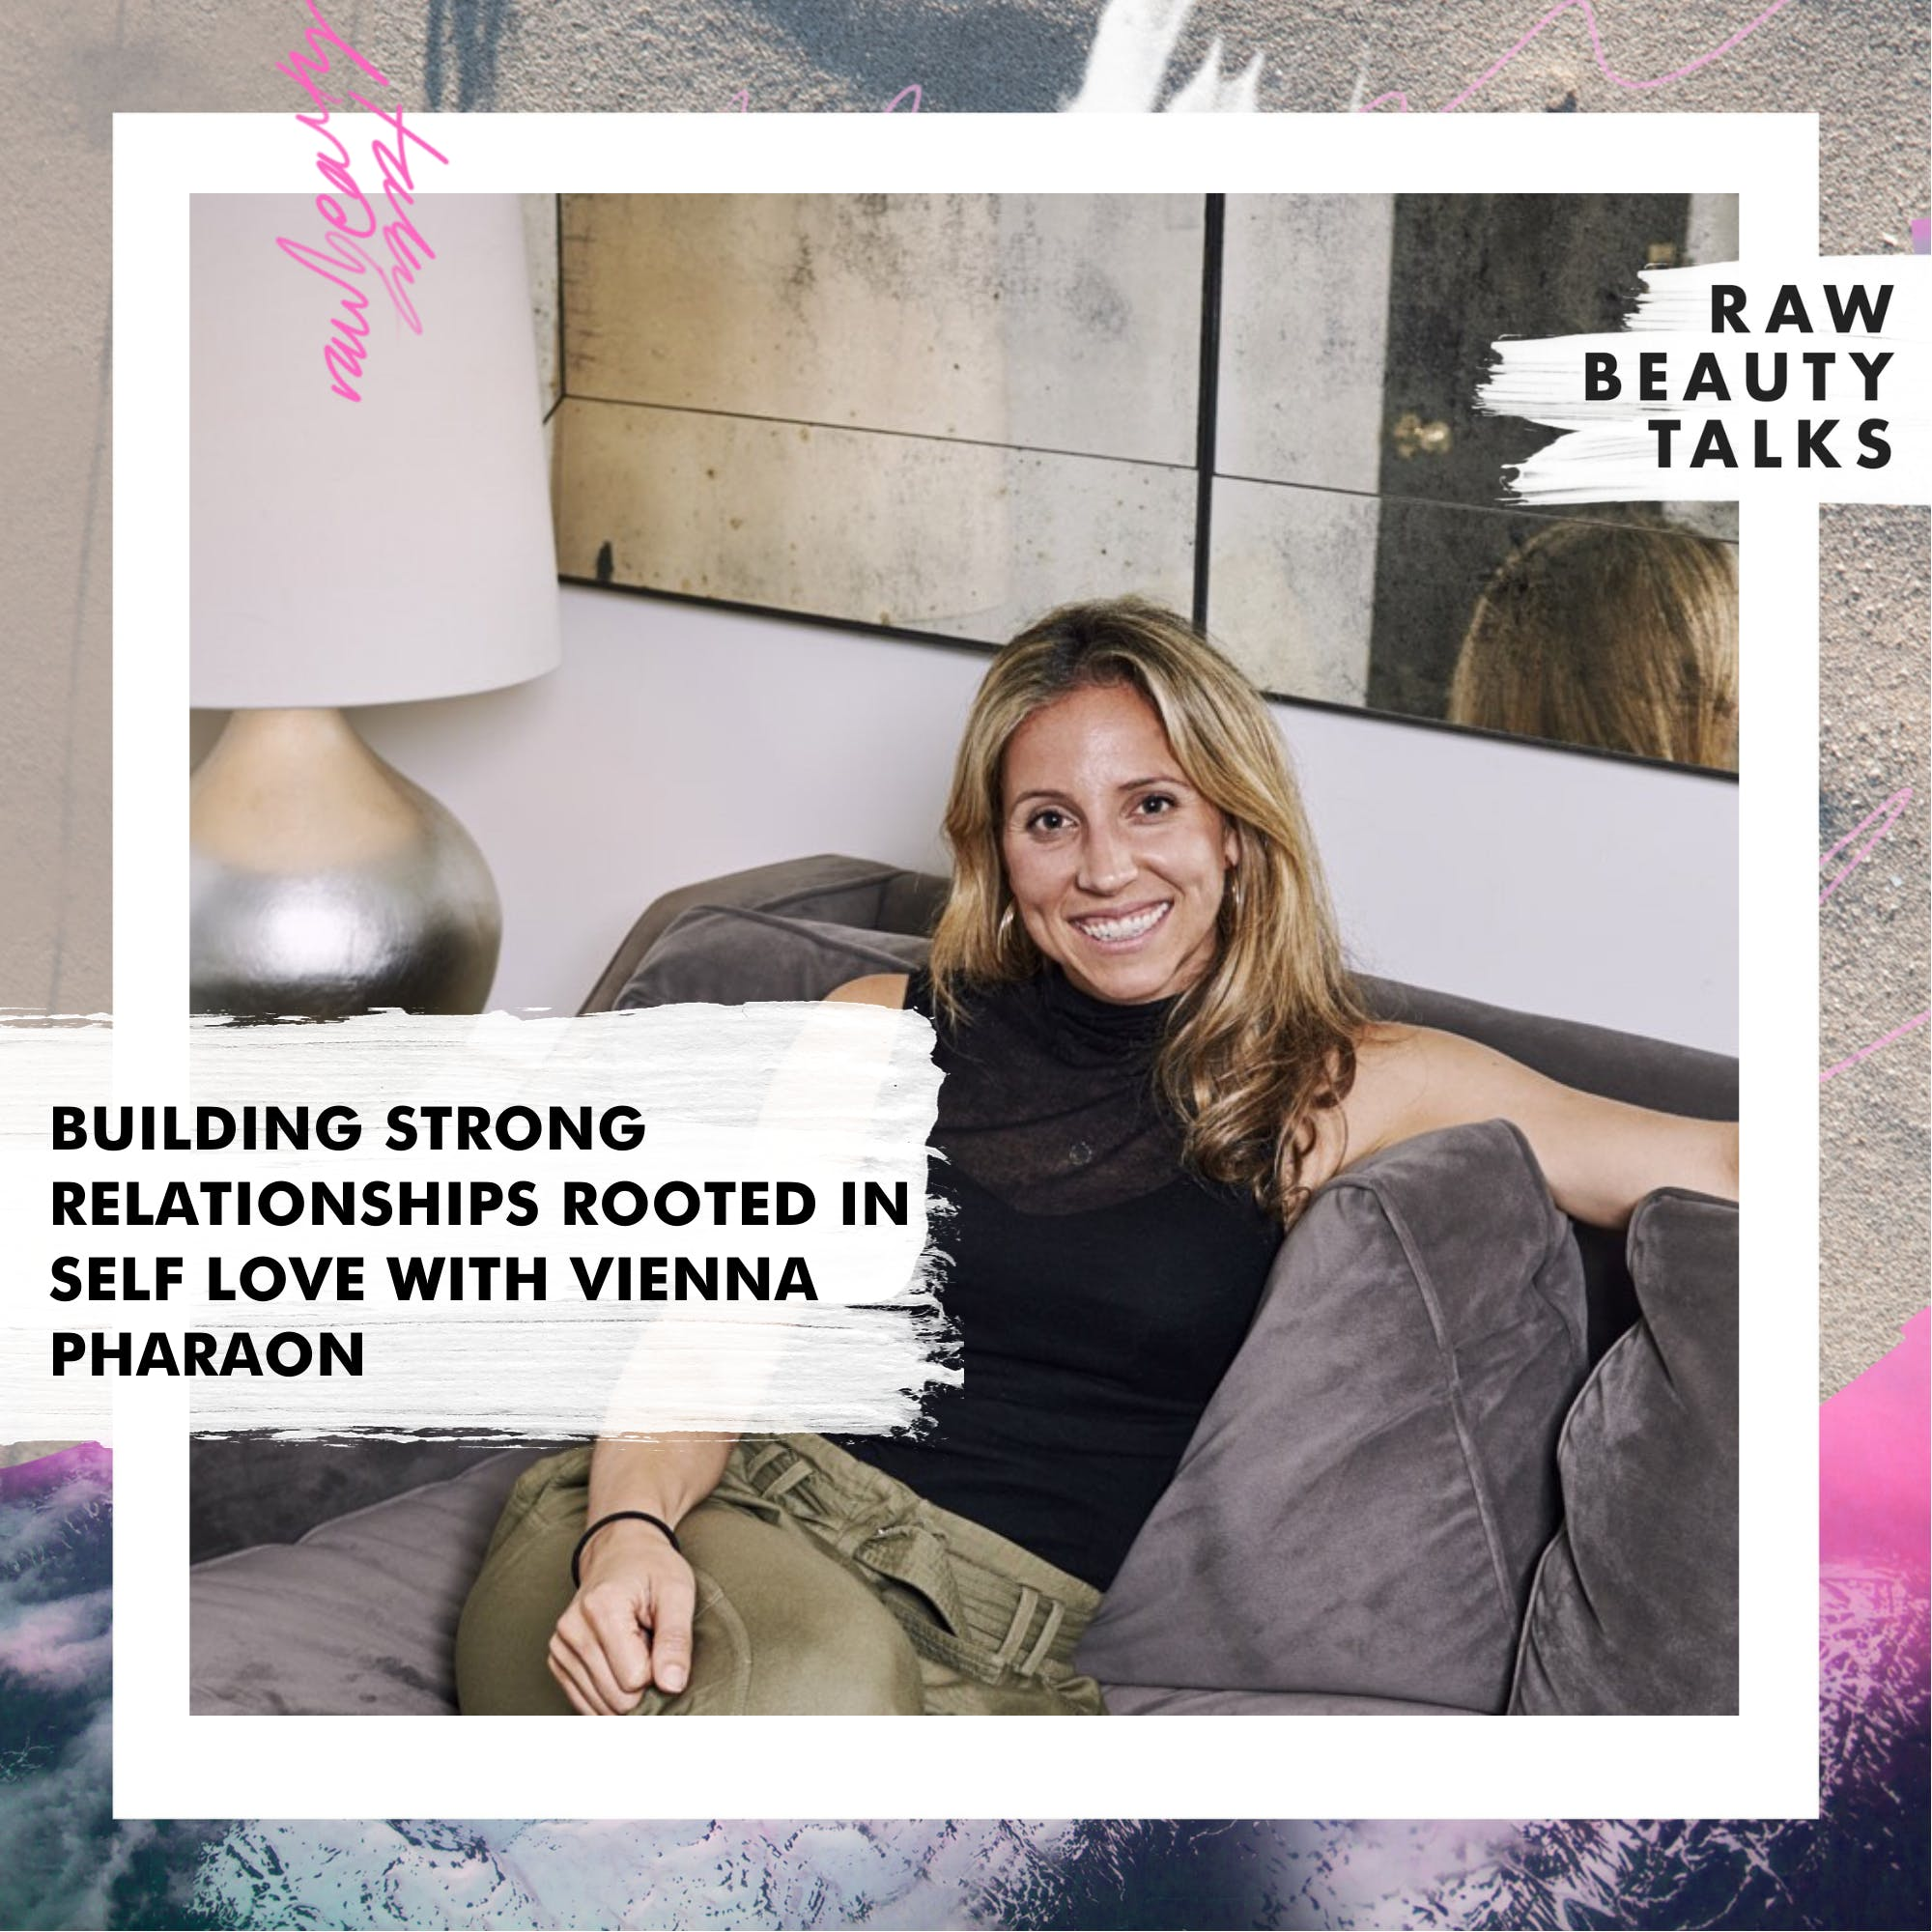 Building Strong Relationships Rooted in Self Love with Vienna Pharaon